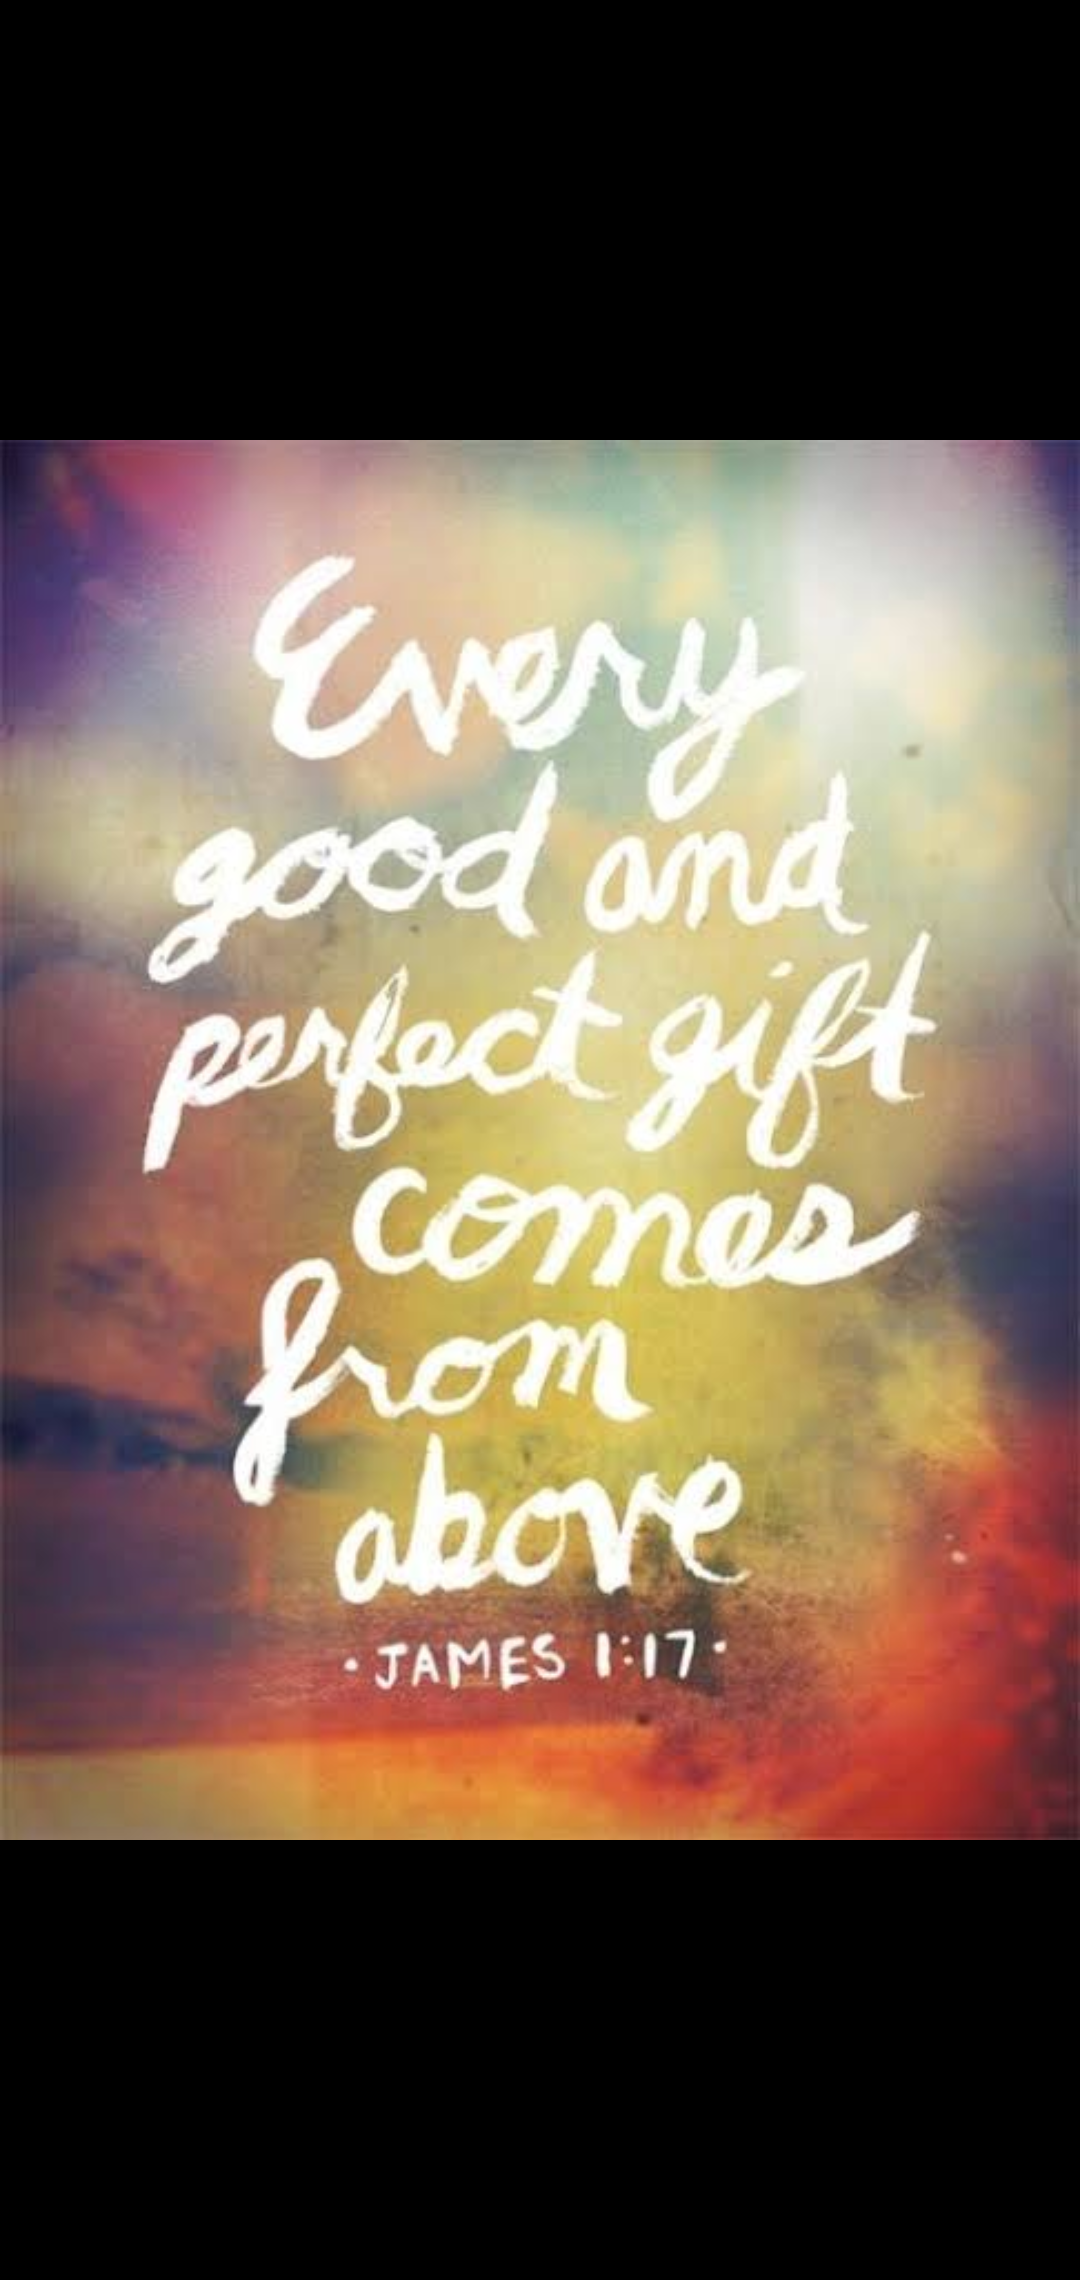 Every good and perfect gift comes froms above..- James 1:17 [1080×2280]